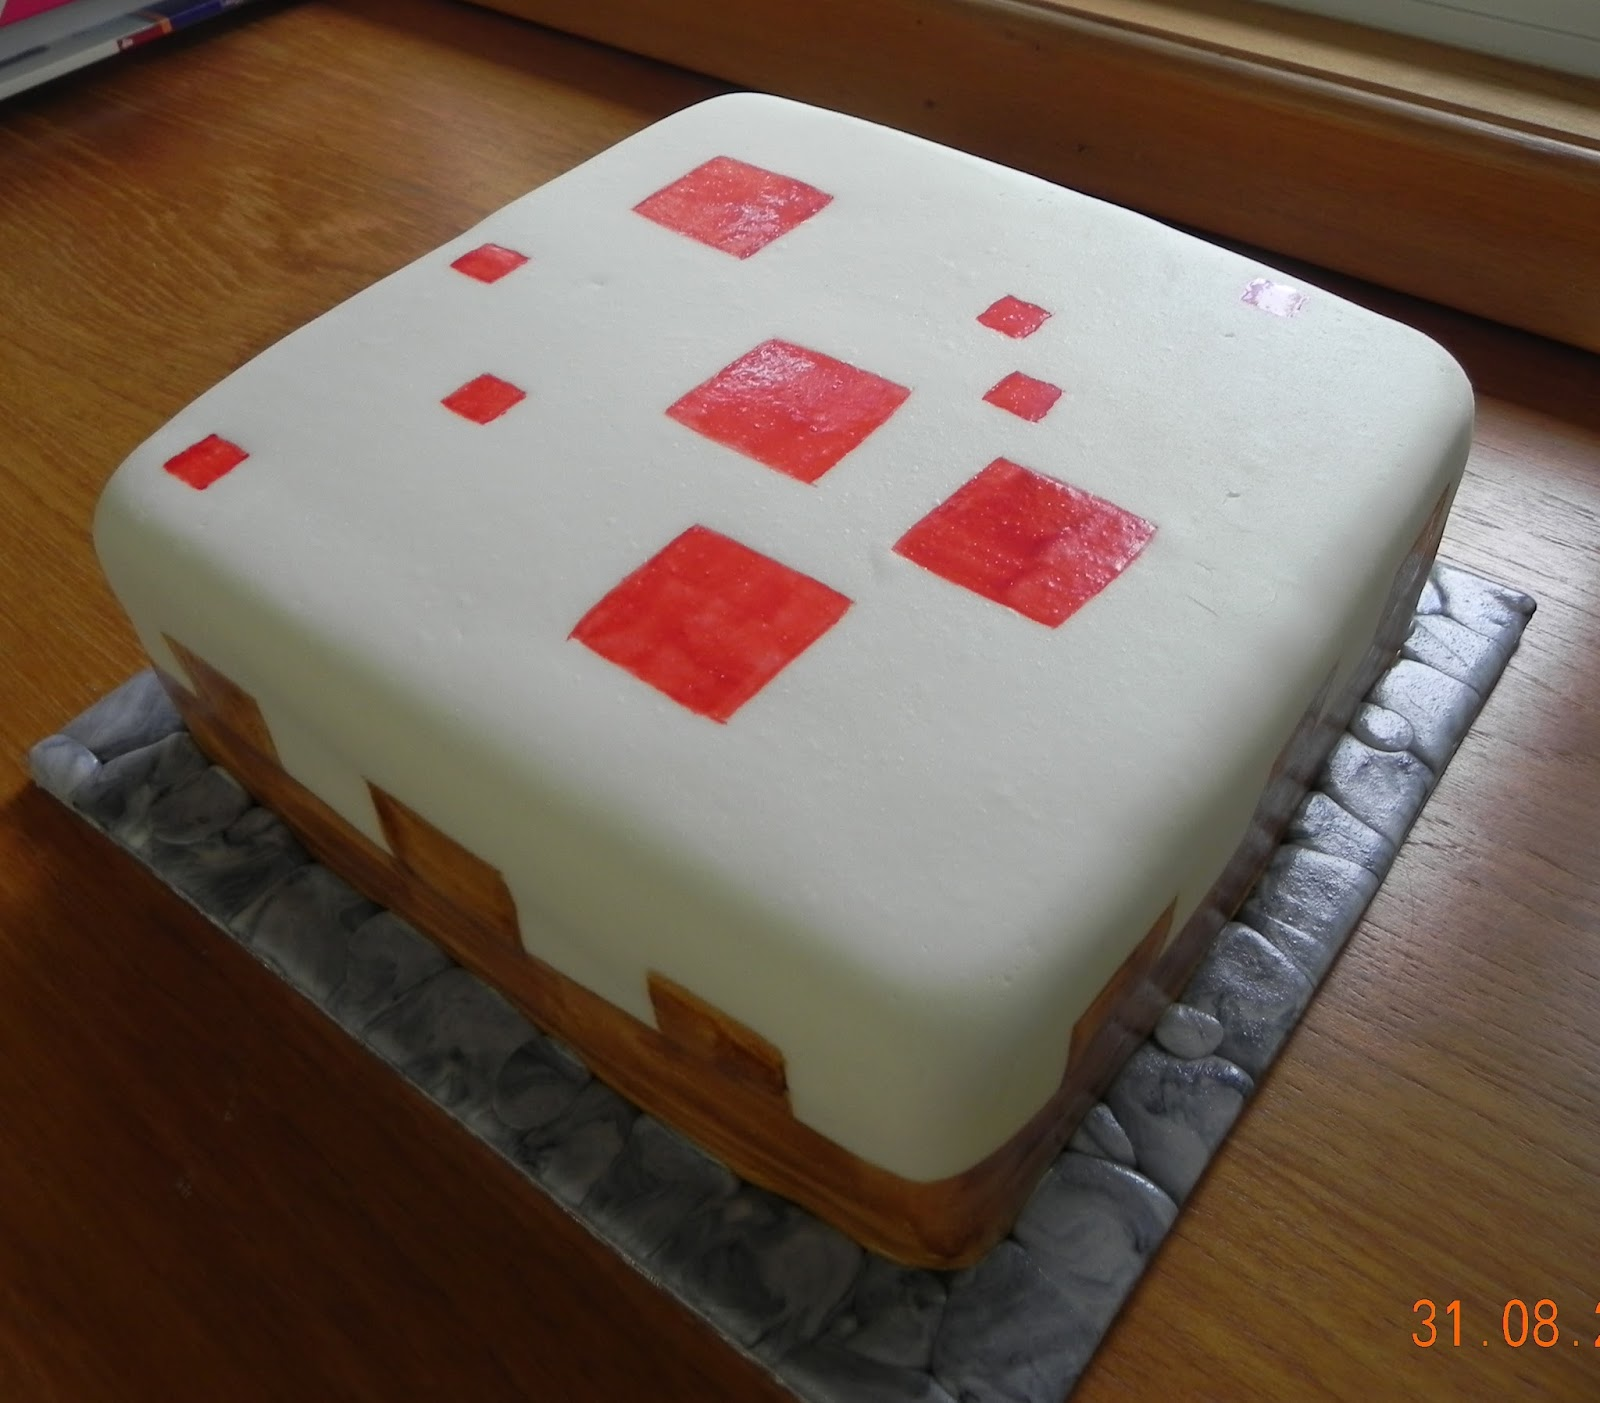 Pictures cakes minecraft of